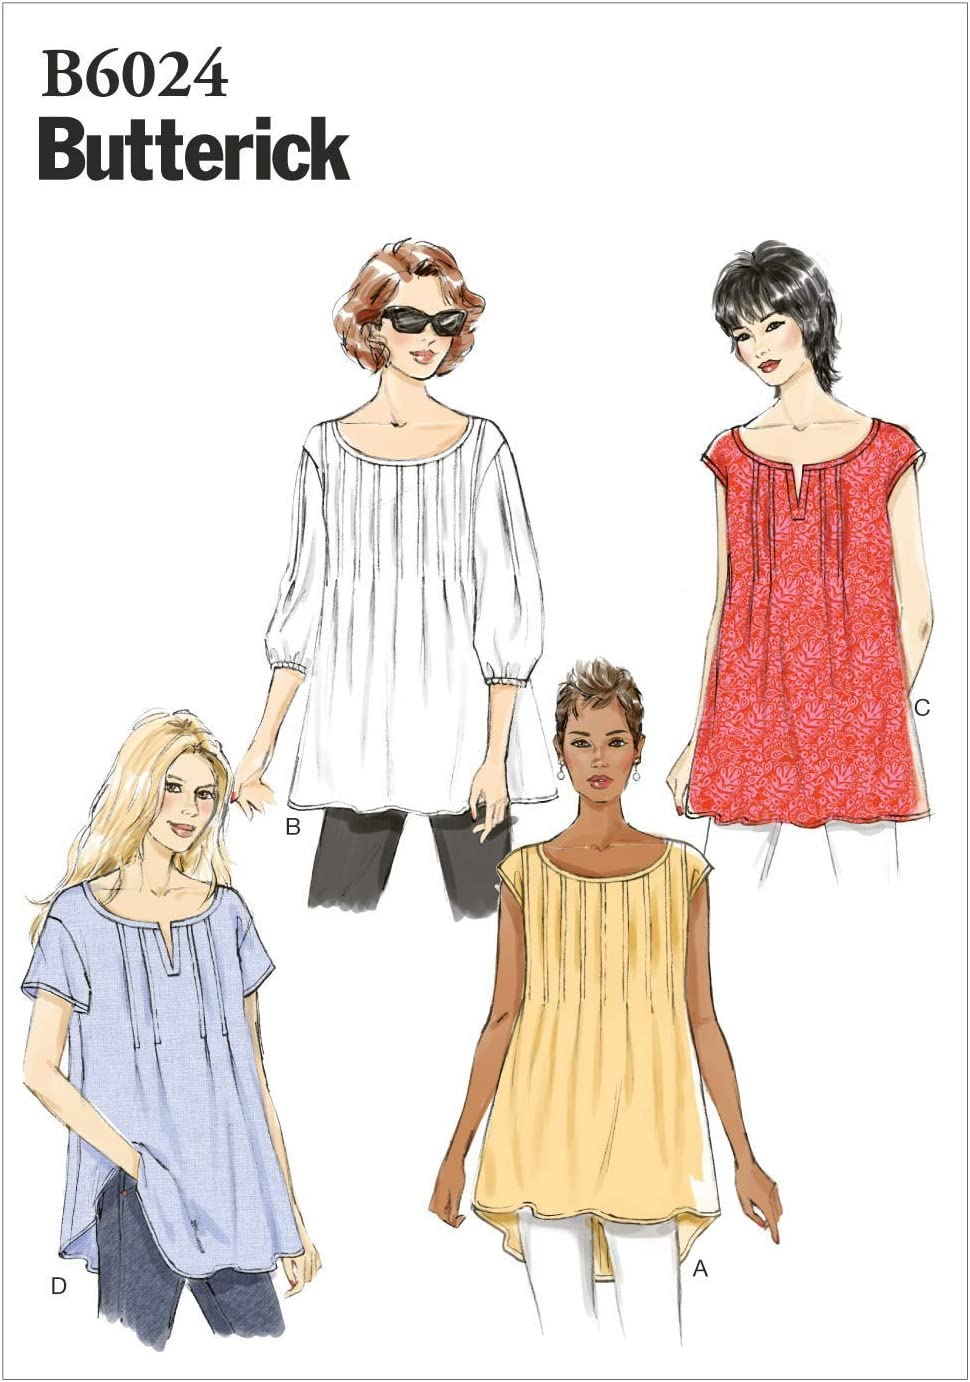 Size ZZ Gown and Pants LRG-XLG-XXL Butterick Patterns B5792ZZ0 Misses Top Sewing Pattern